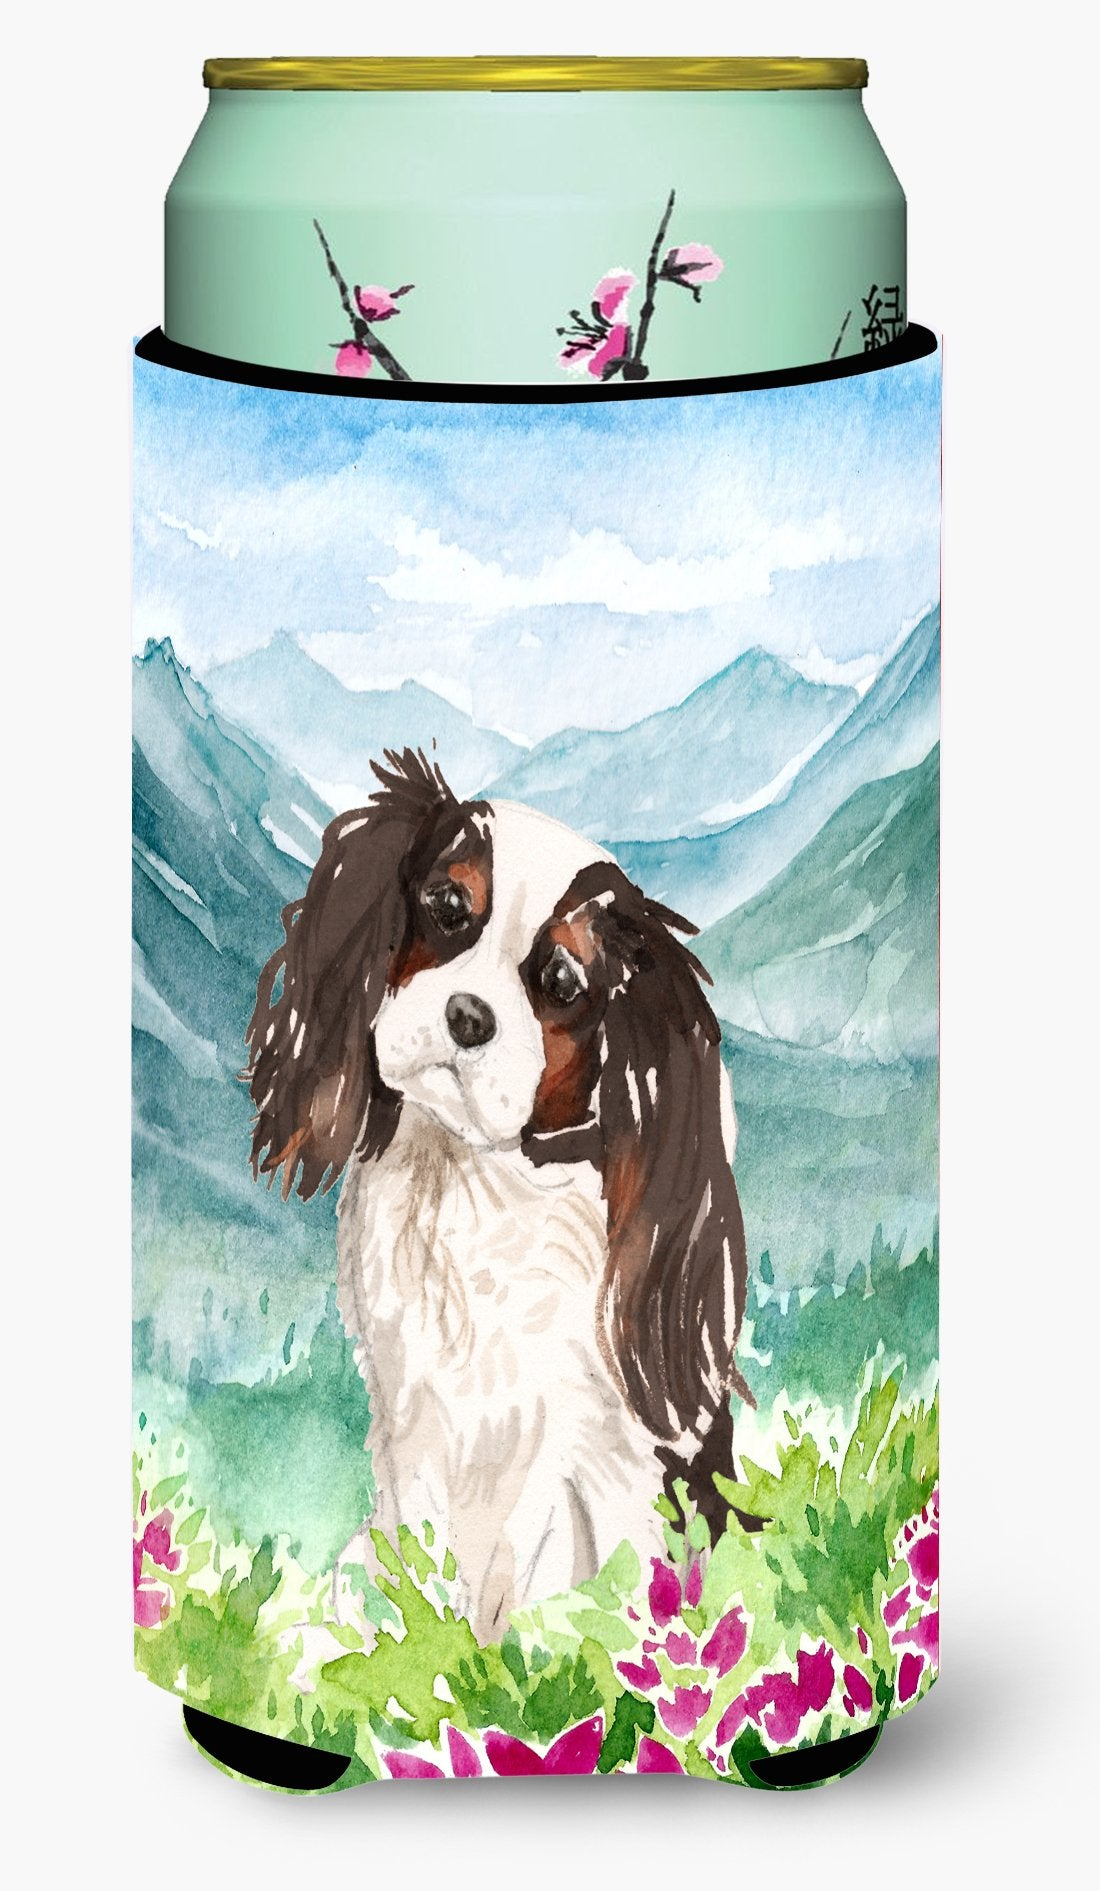 Mountian Flowers Tricolor Cavalier Spaniel Tall Boy Beverage Insulator Hugger CK1966TBC by Caroline's Treasures